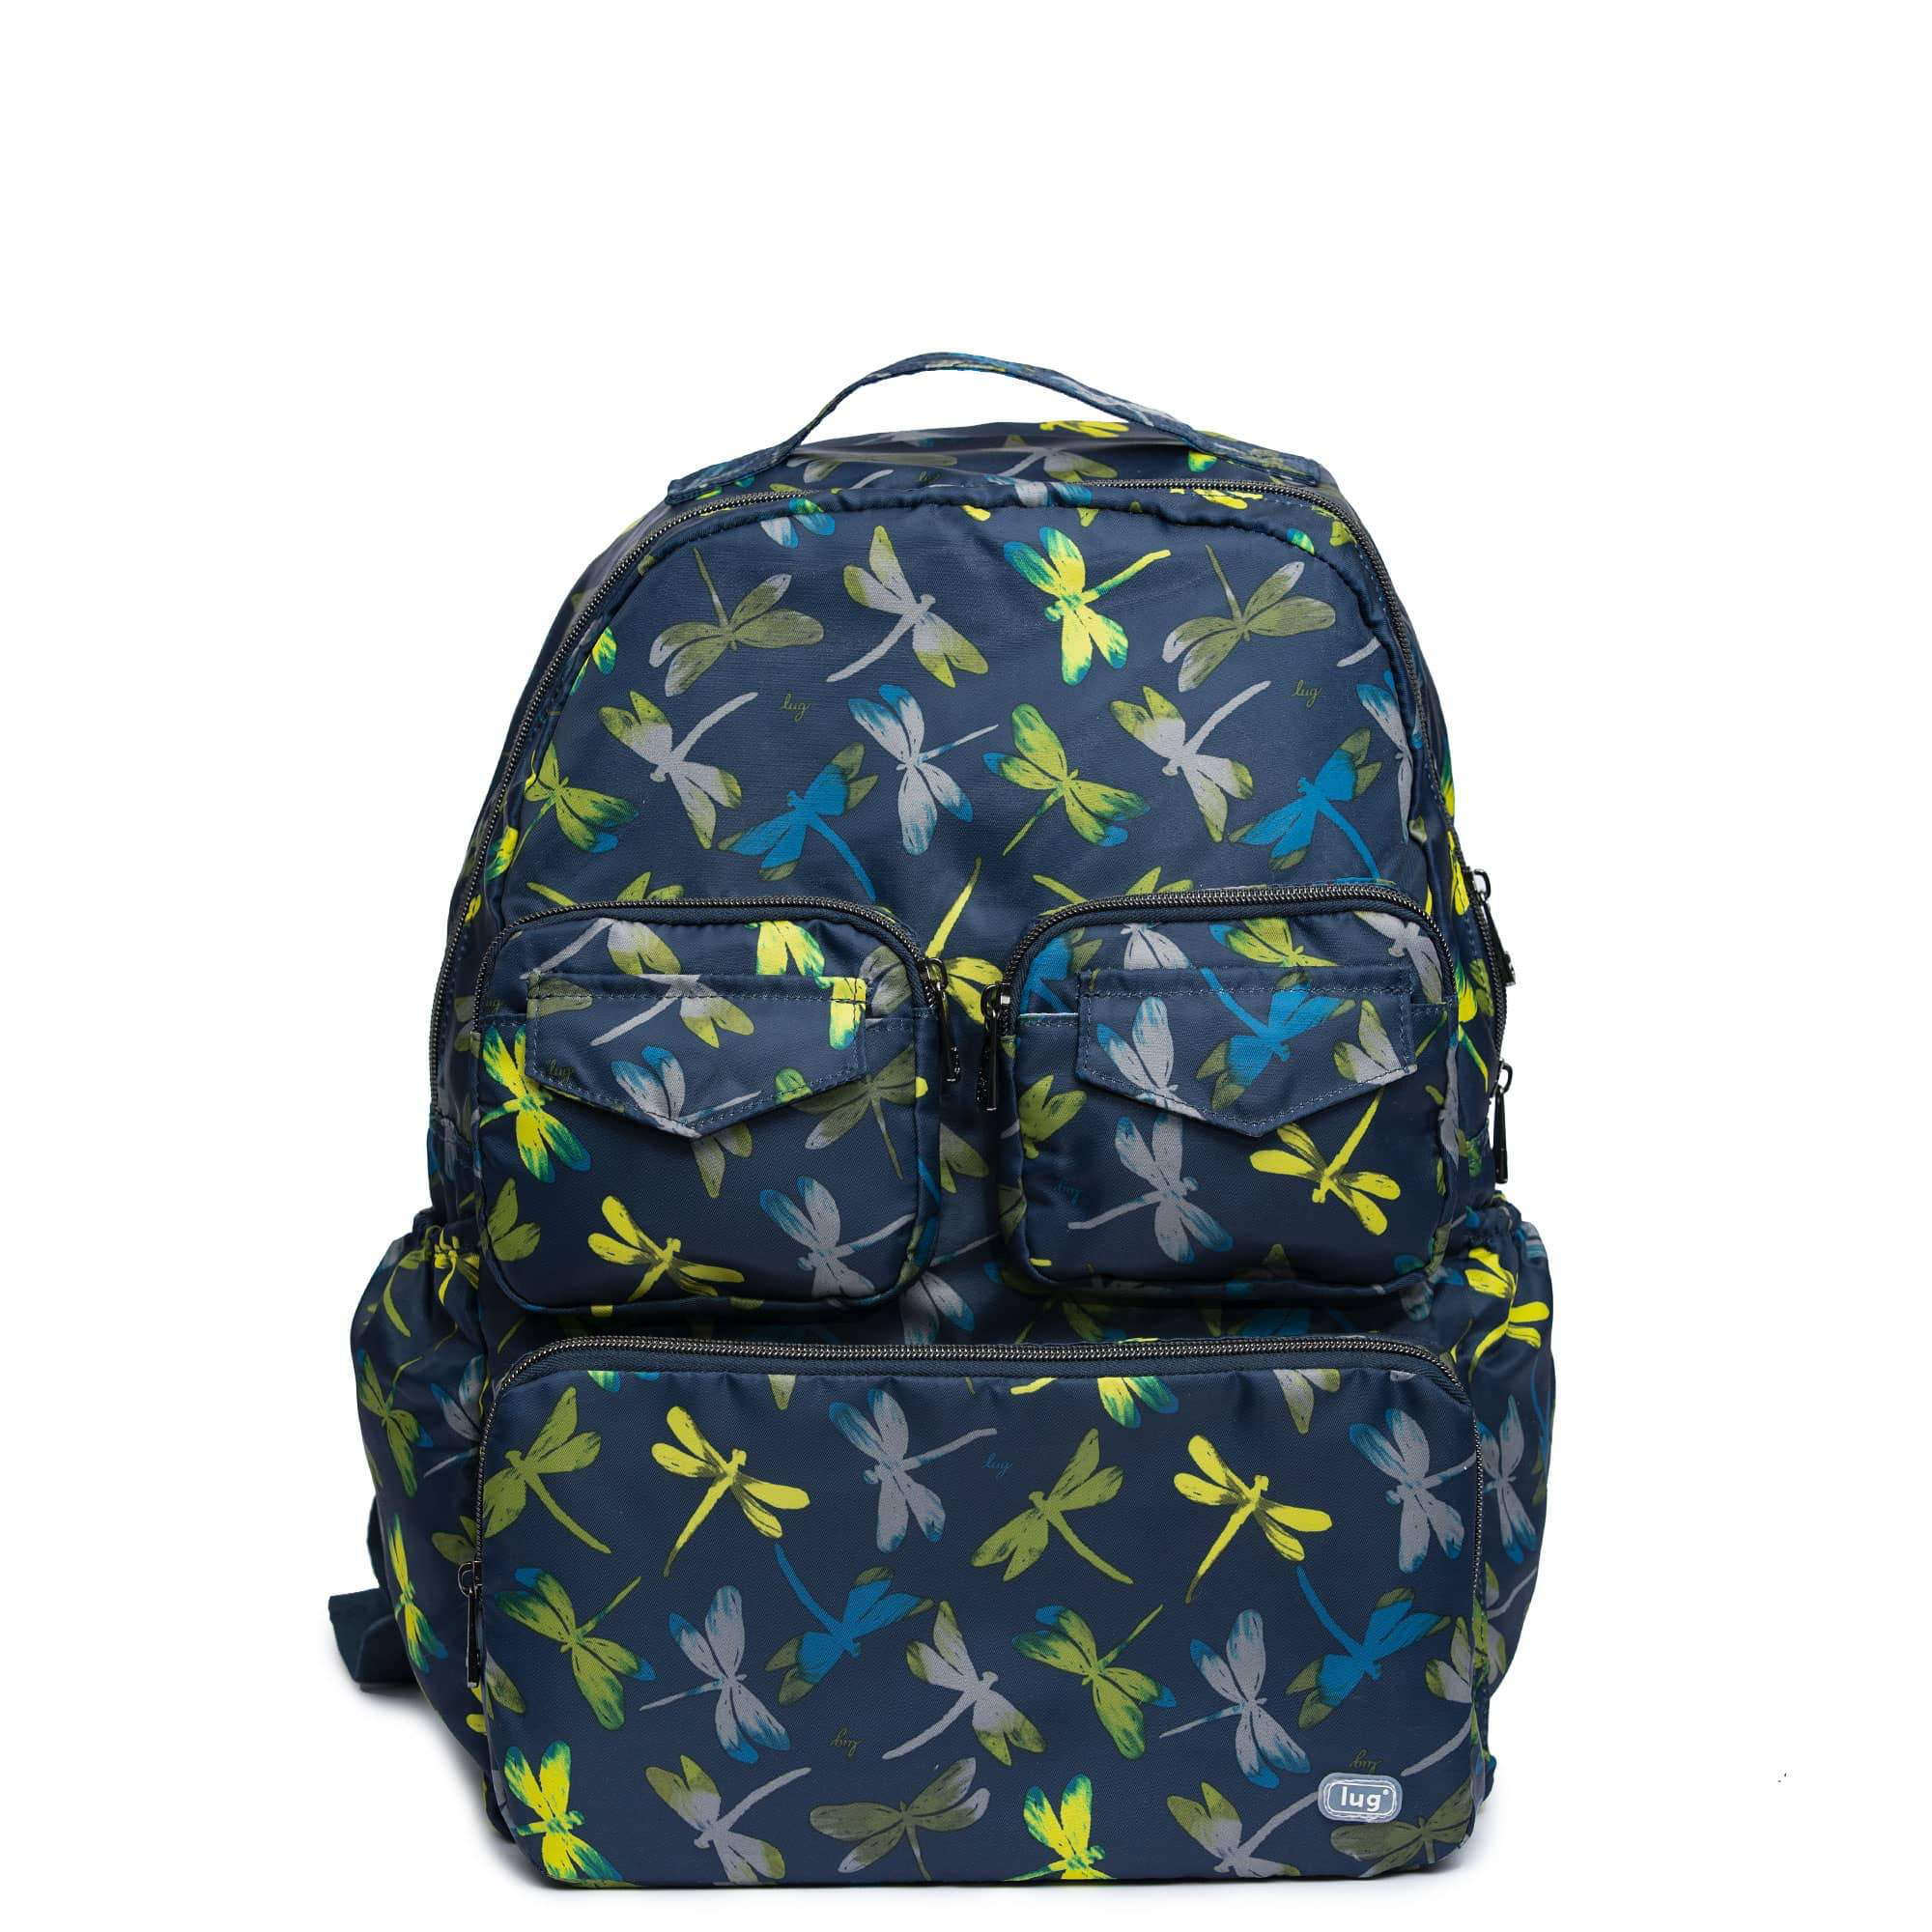 LUG- Puddle Dragon Fly Navy Packable Backpack